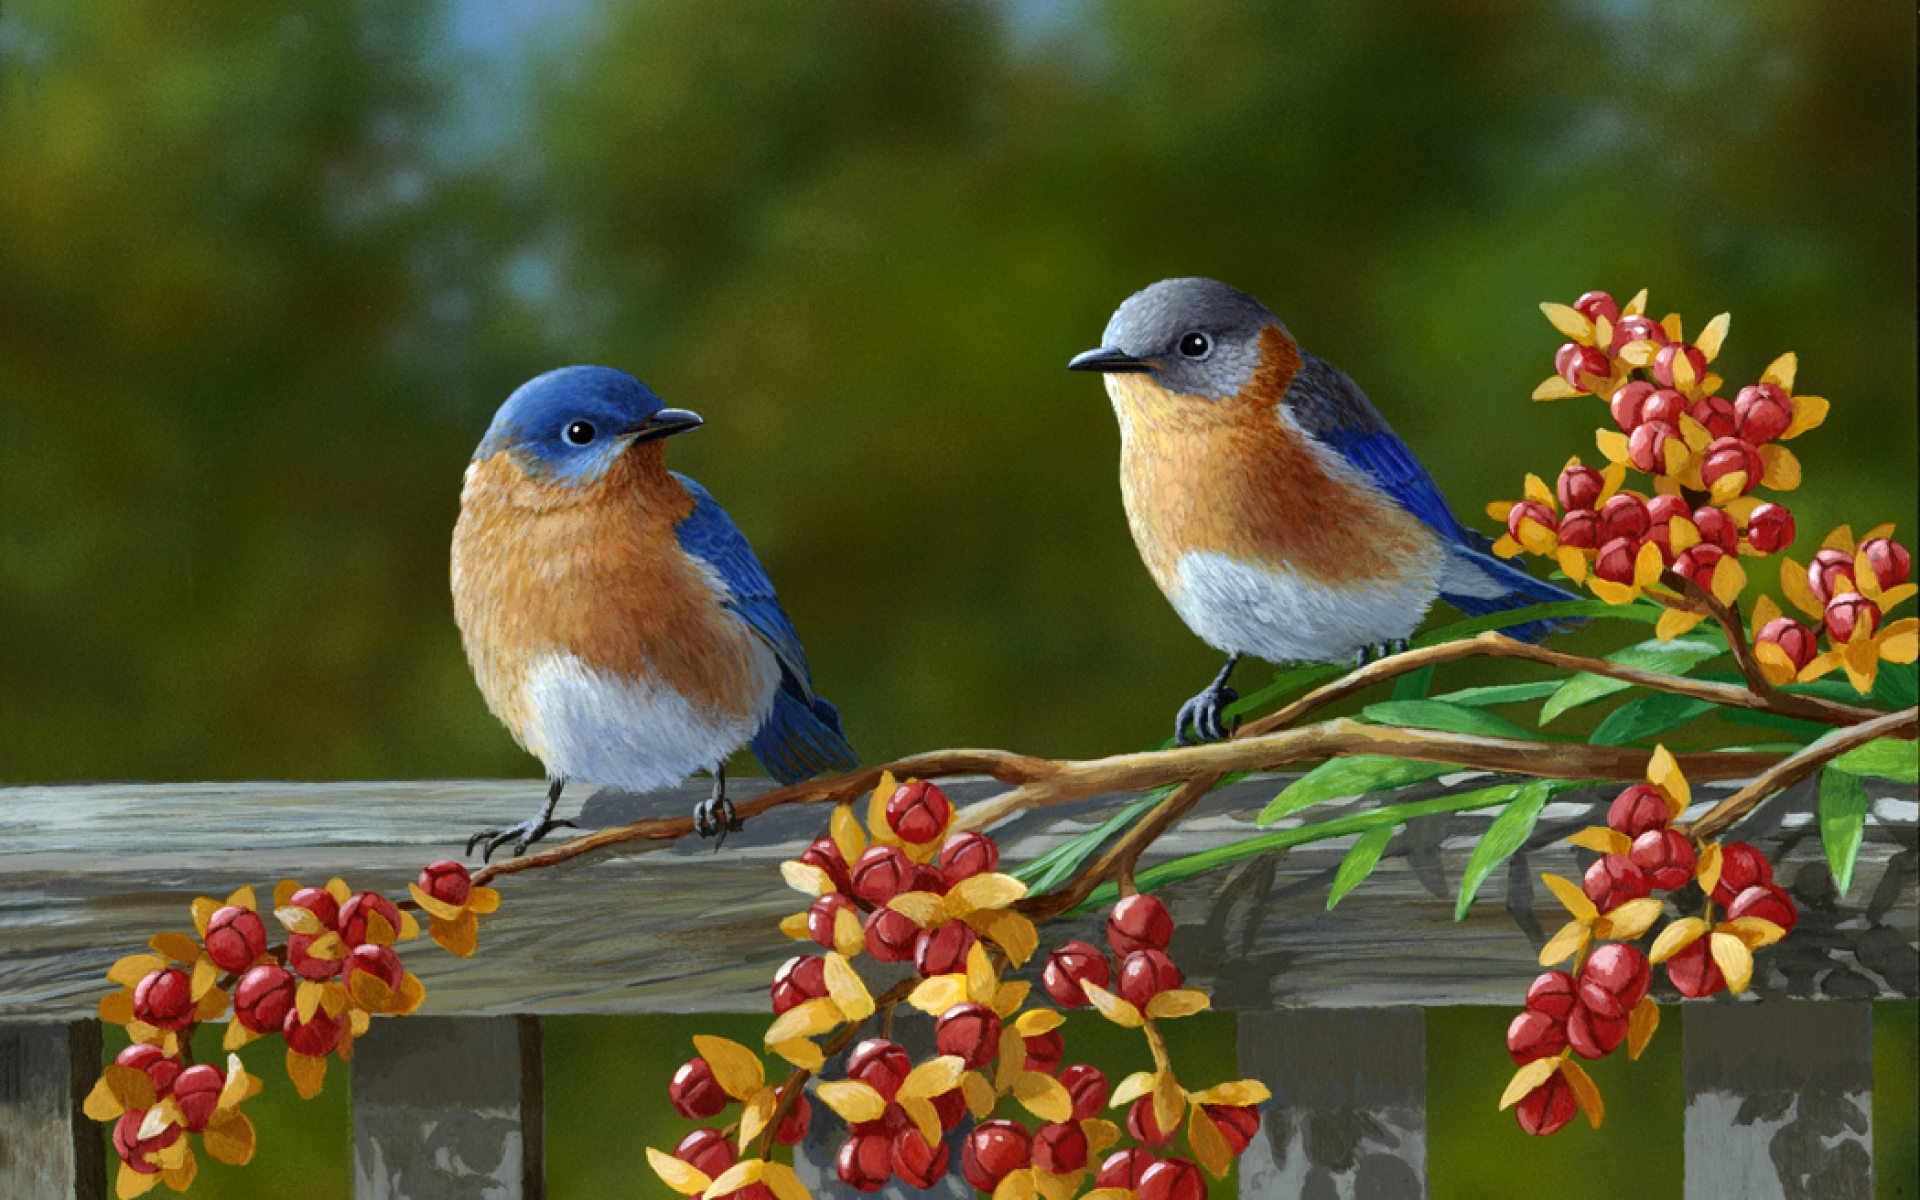 Free Bluebird Wallpaper For Desktop: Mario Muzzatti, Professione Ornitologo